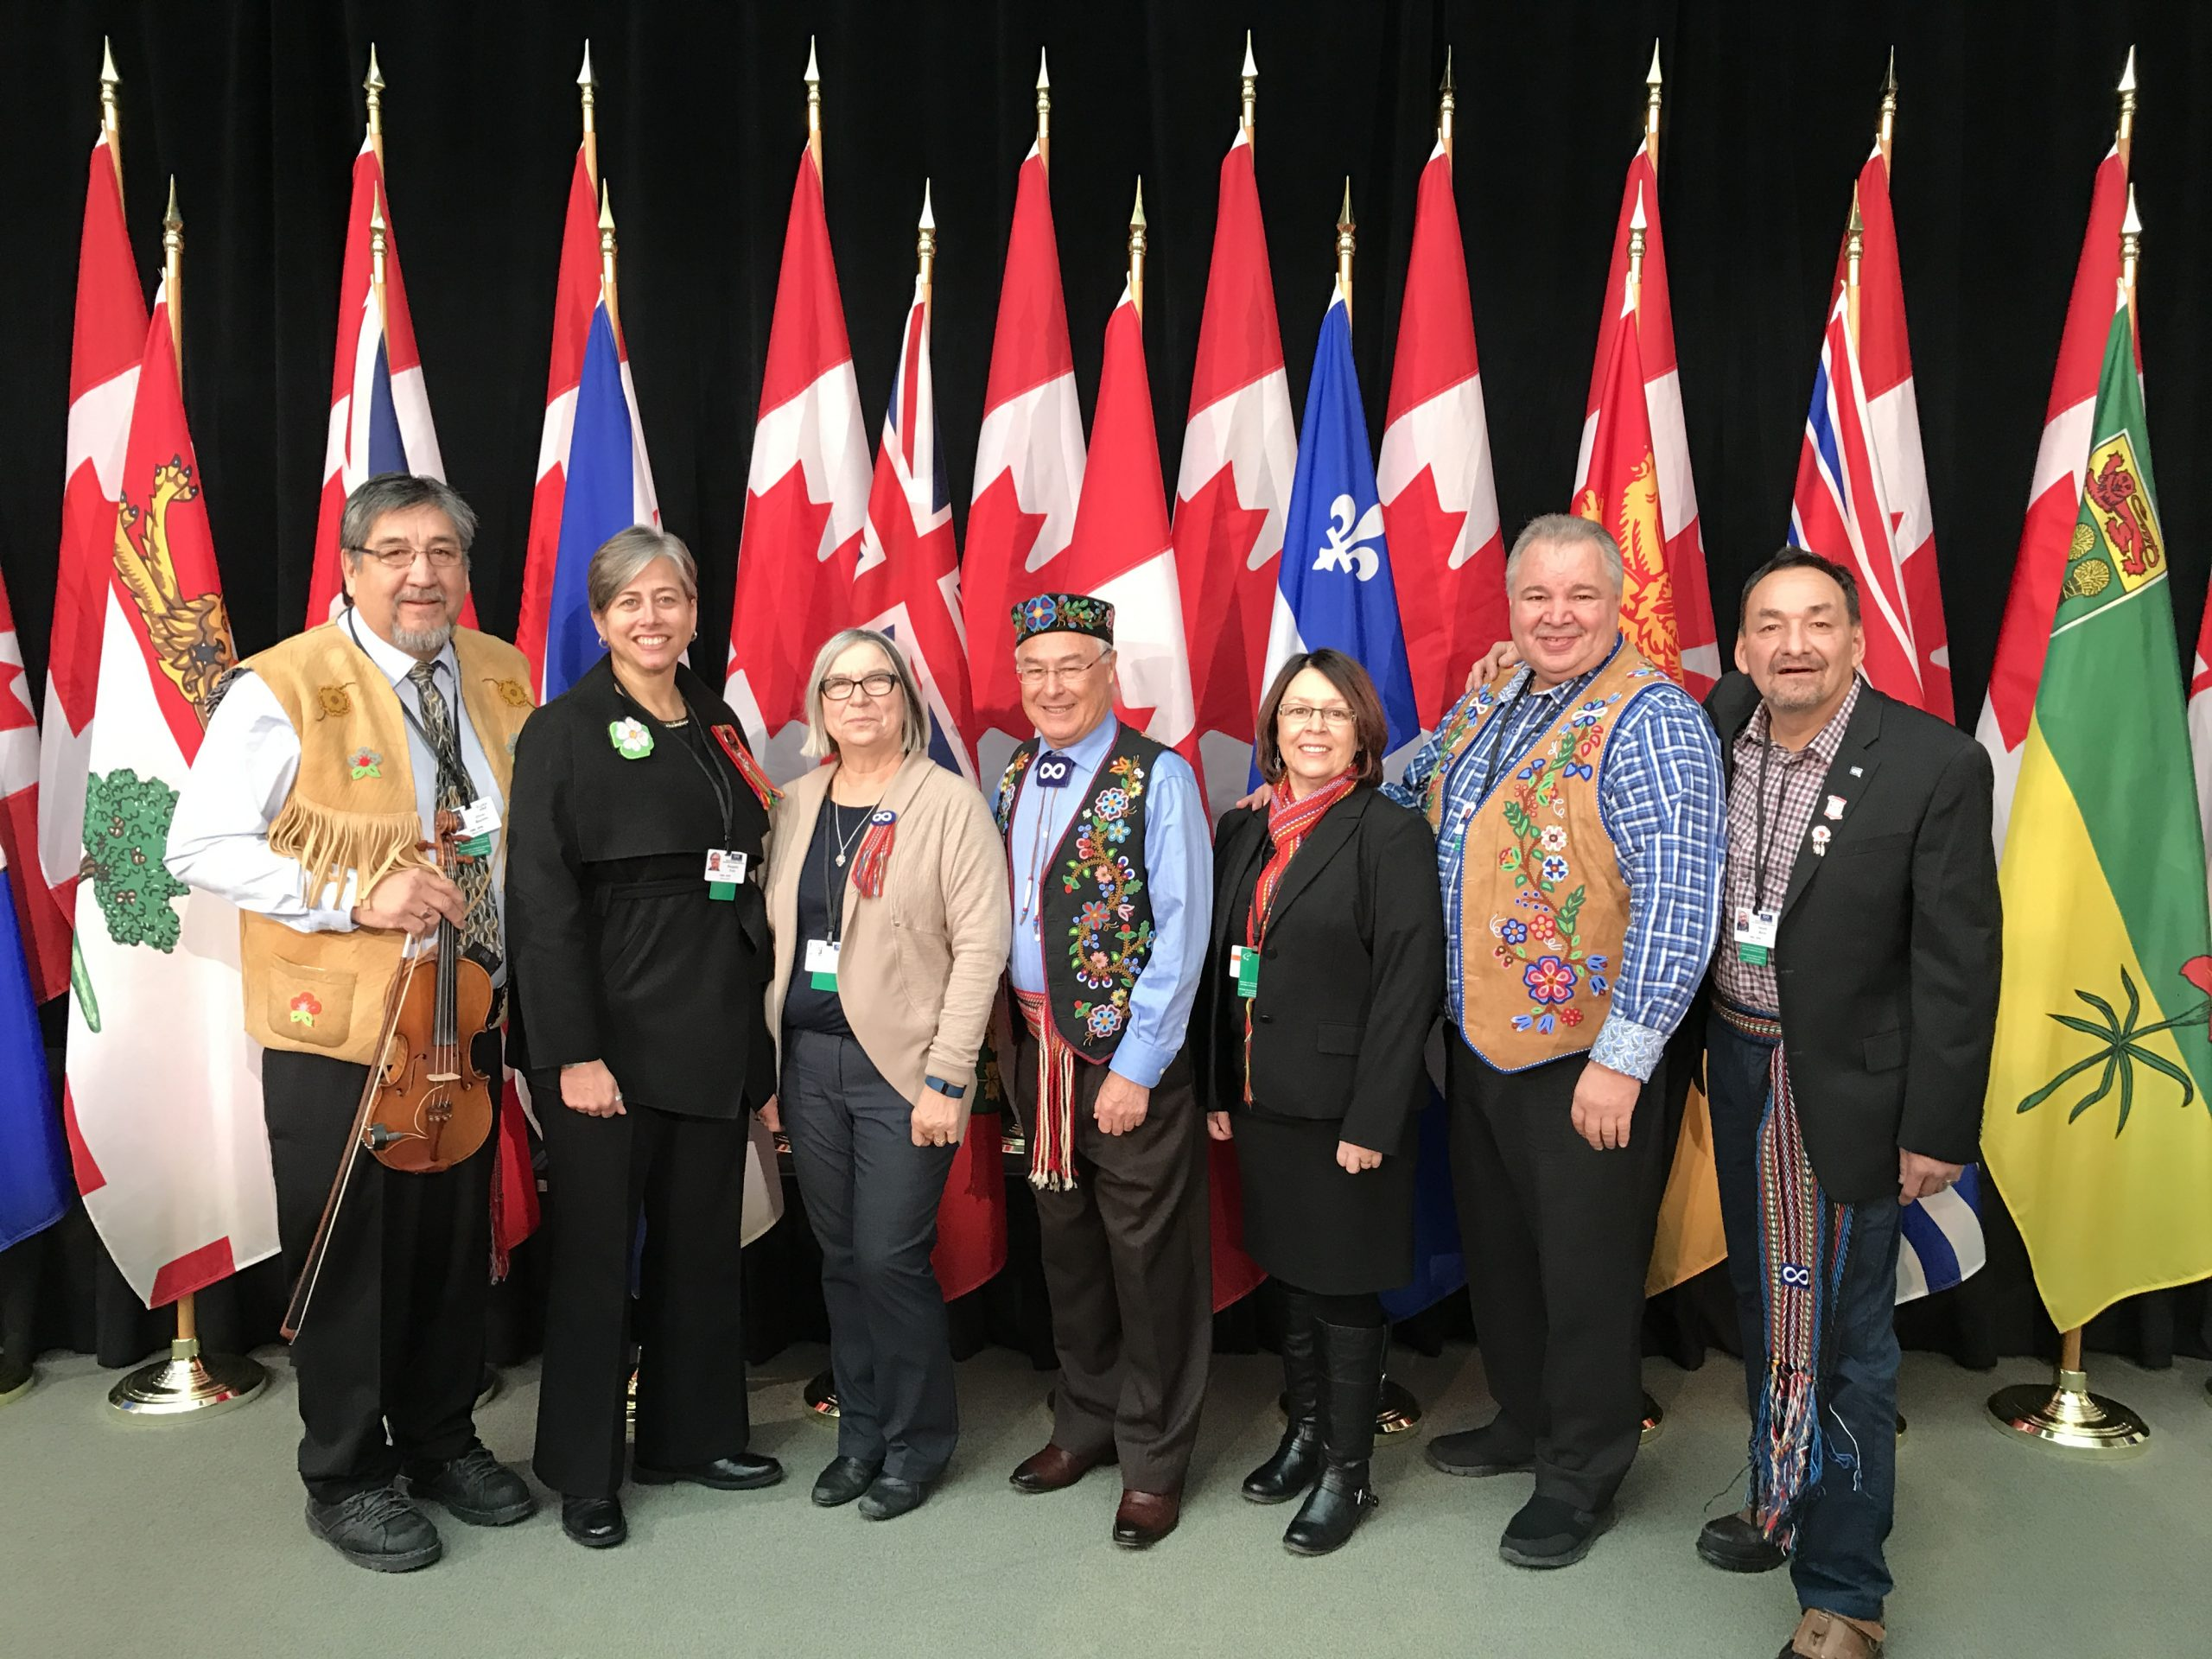 Métis Nation delegates at the meeting between Indigenous leaders and Canadian First Ministers 2016 (left to right) Métis elder Oliver Boulette, MNO President Margaret Froh, MNA President Audrey Poitras, MNC President Clément Chartier, MNBC President Clara Morin Dal Col, MMF President David Chartrand and MN-S Vice-President Gerald Morin. Photo and Text credits to: Métis Nation of Ontario.